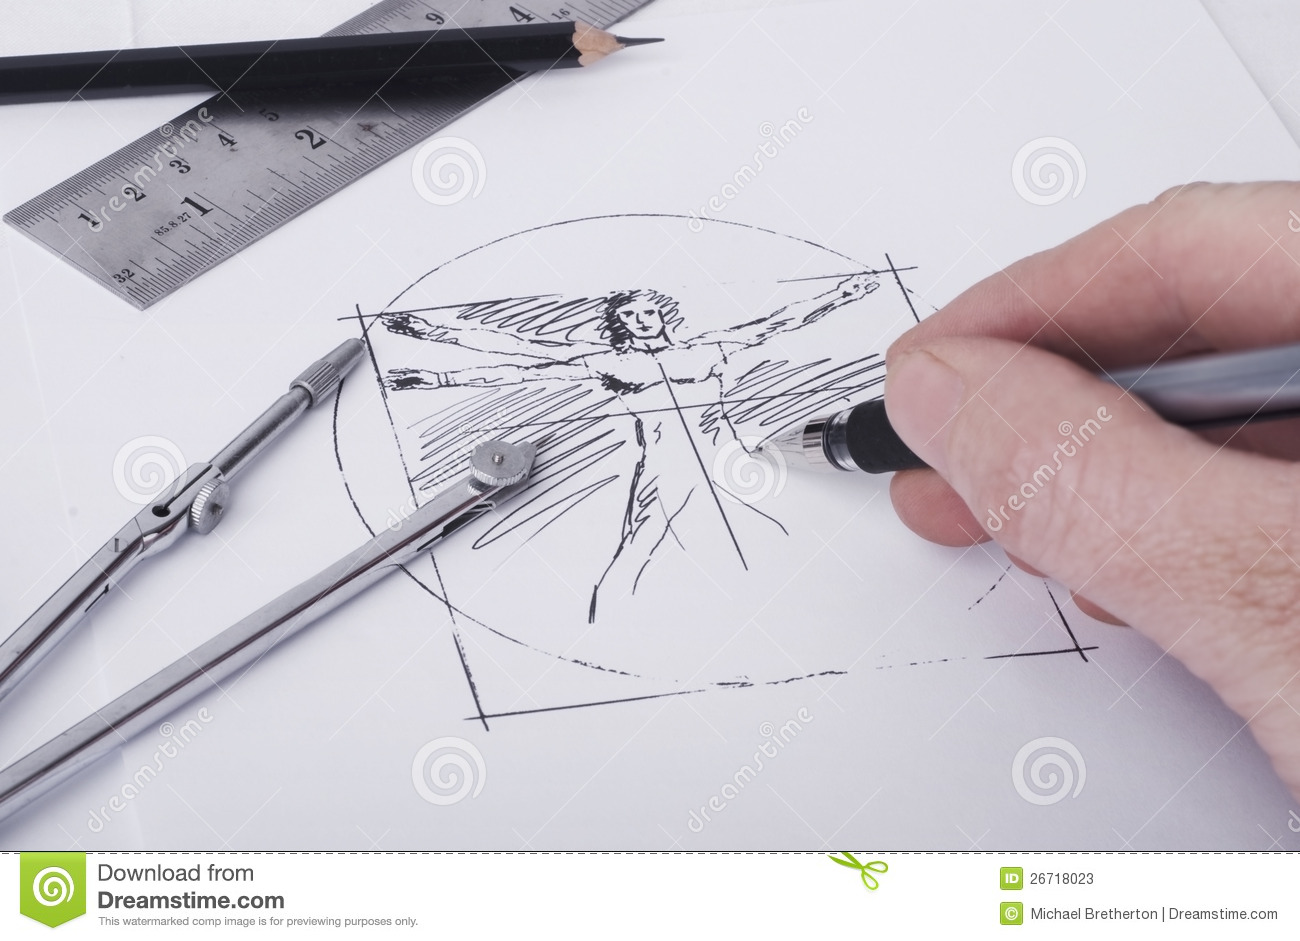 Person doing a sketch based on the Vitruvian Man(Note the illustration